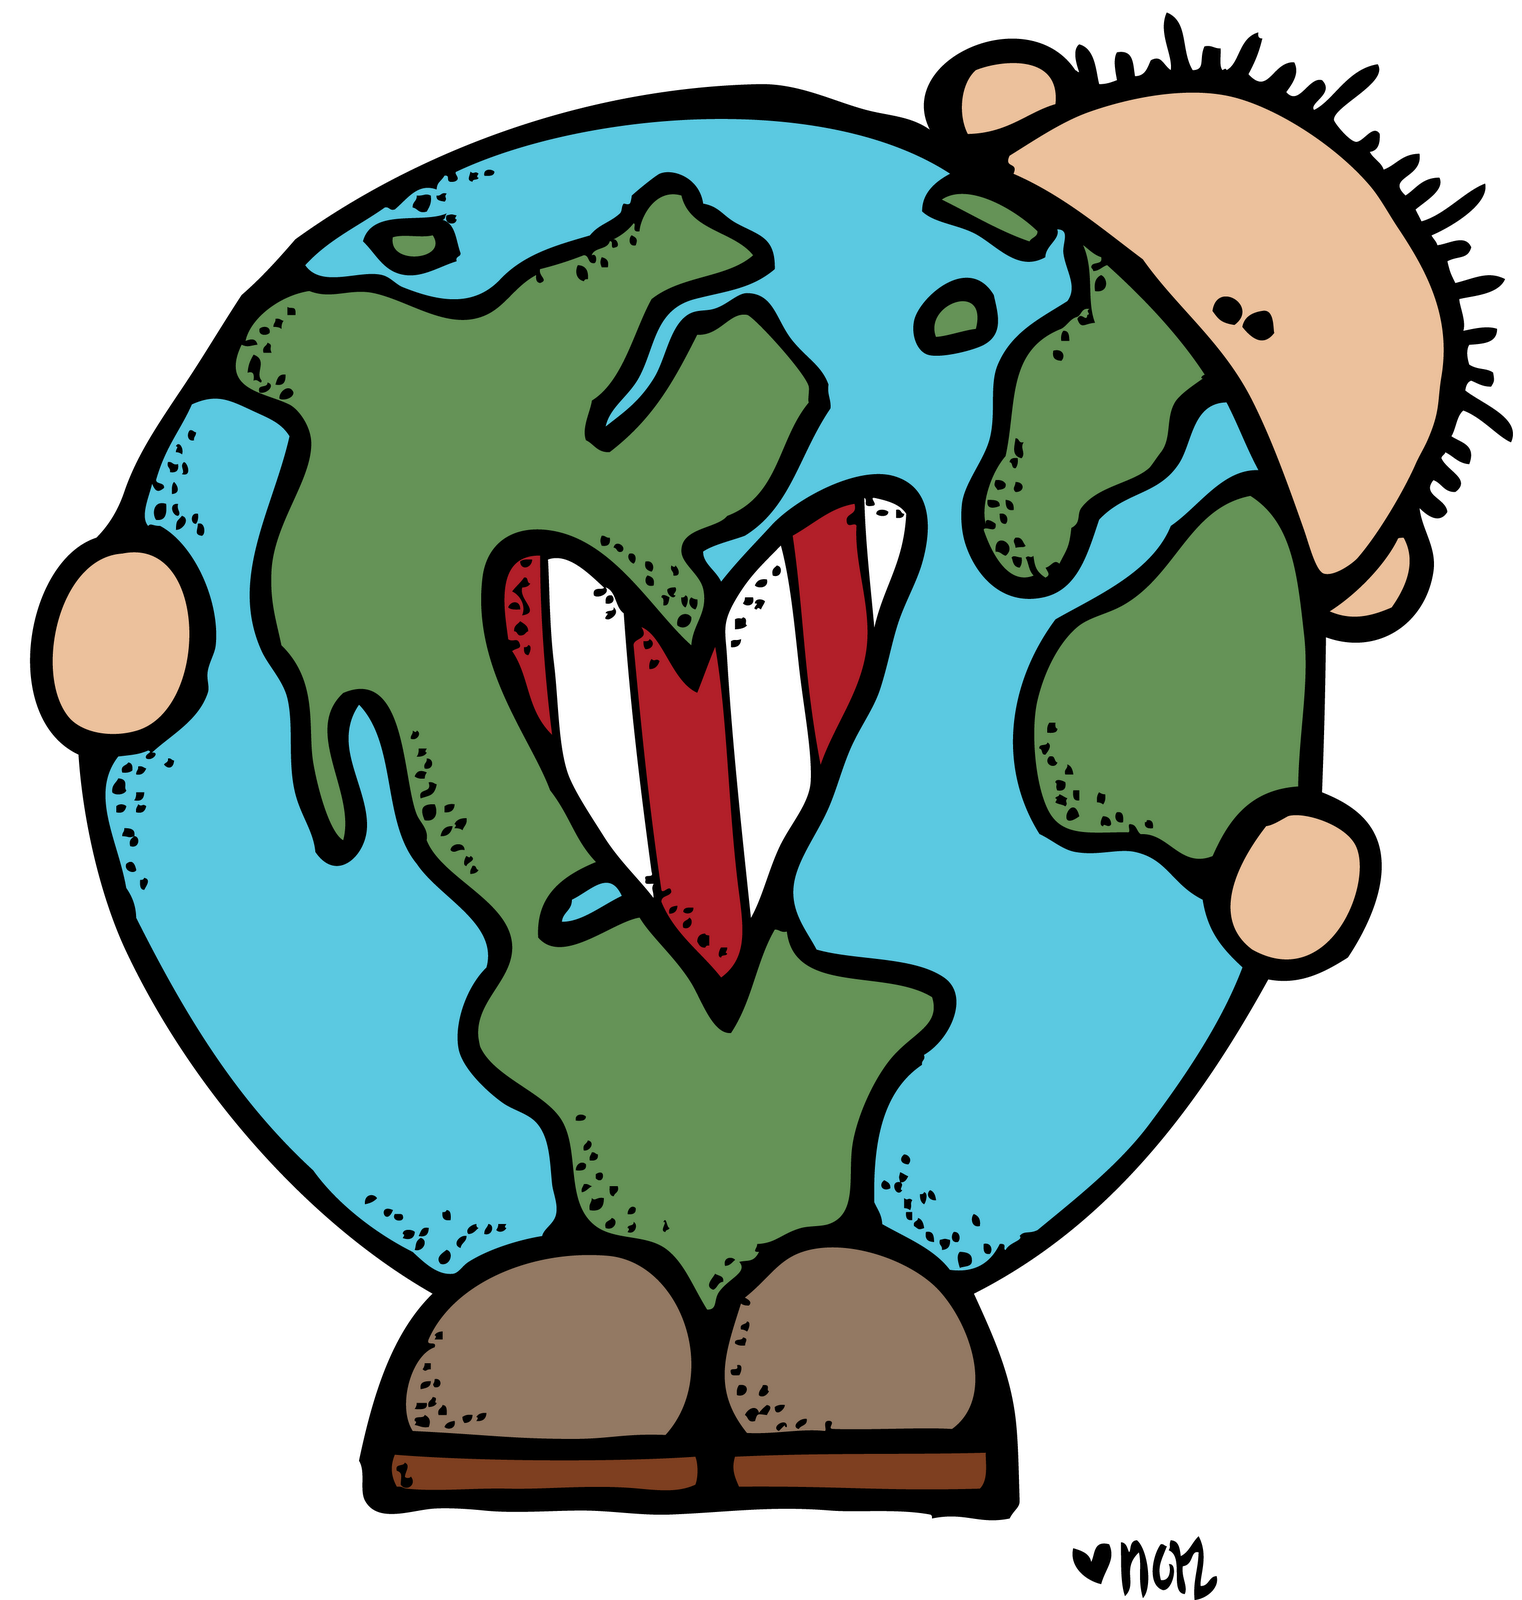 Australia opera house clipart graphic freeuse stock MelonHeadz: 2012 Earth day images:) graphic freeuse stock